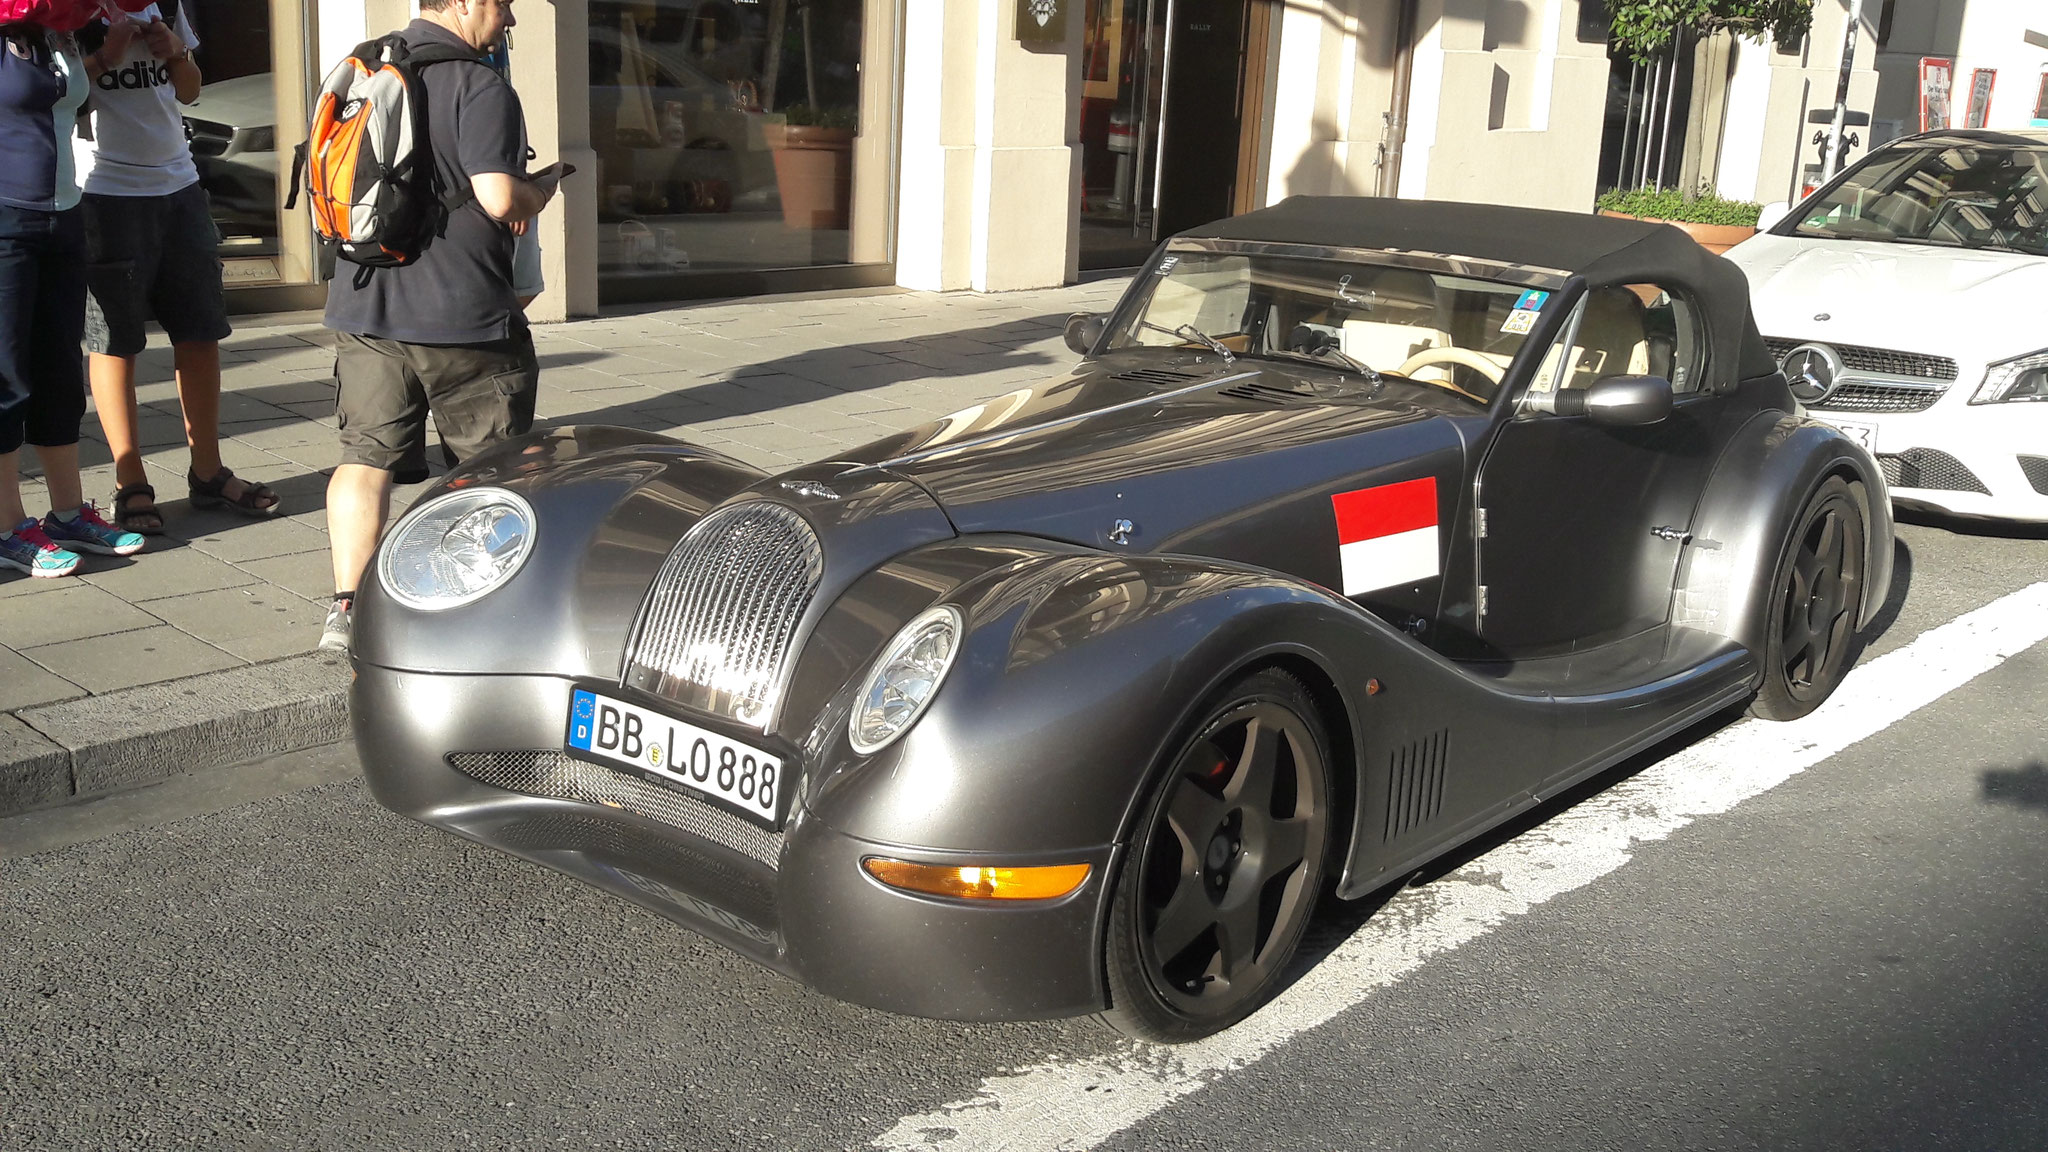 Morgan Aero Roadster - BB-LO-888